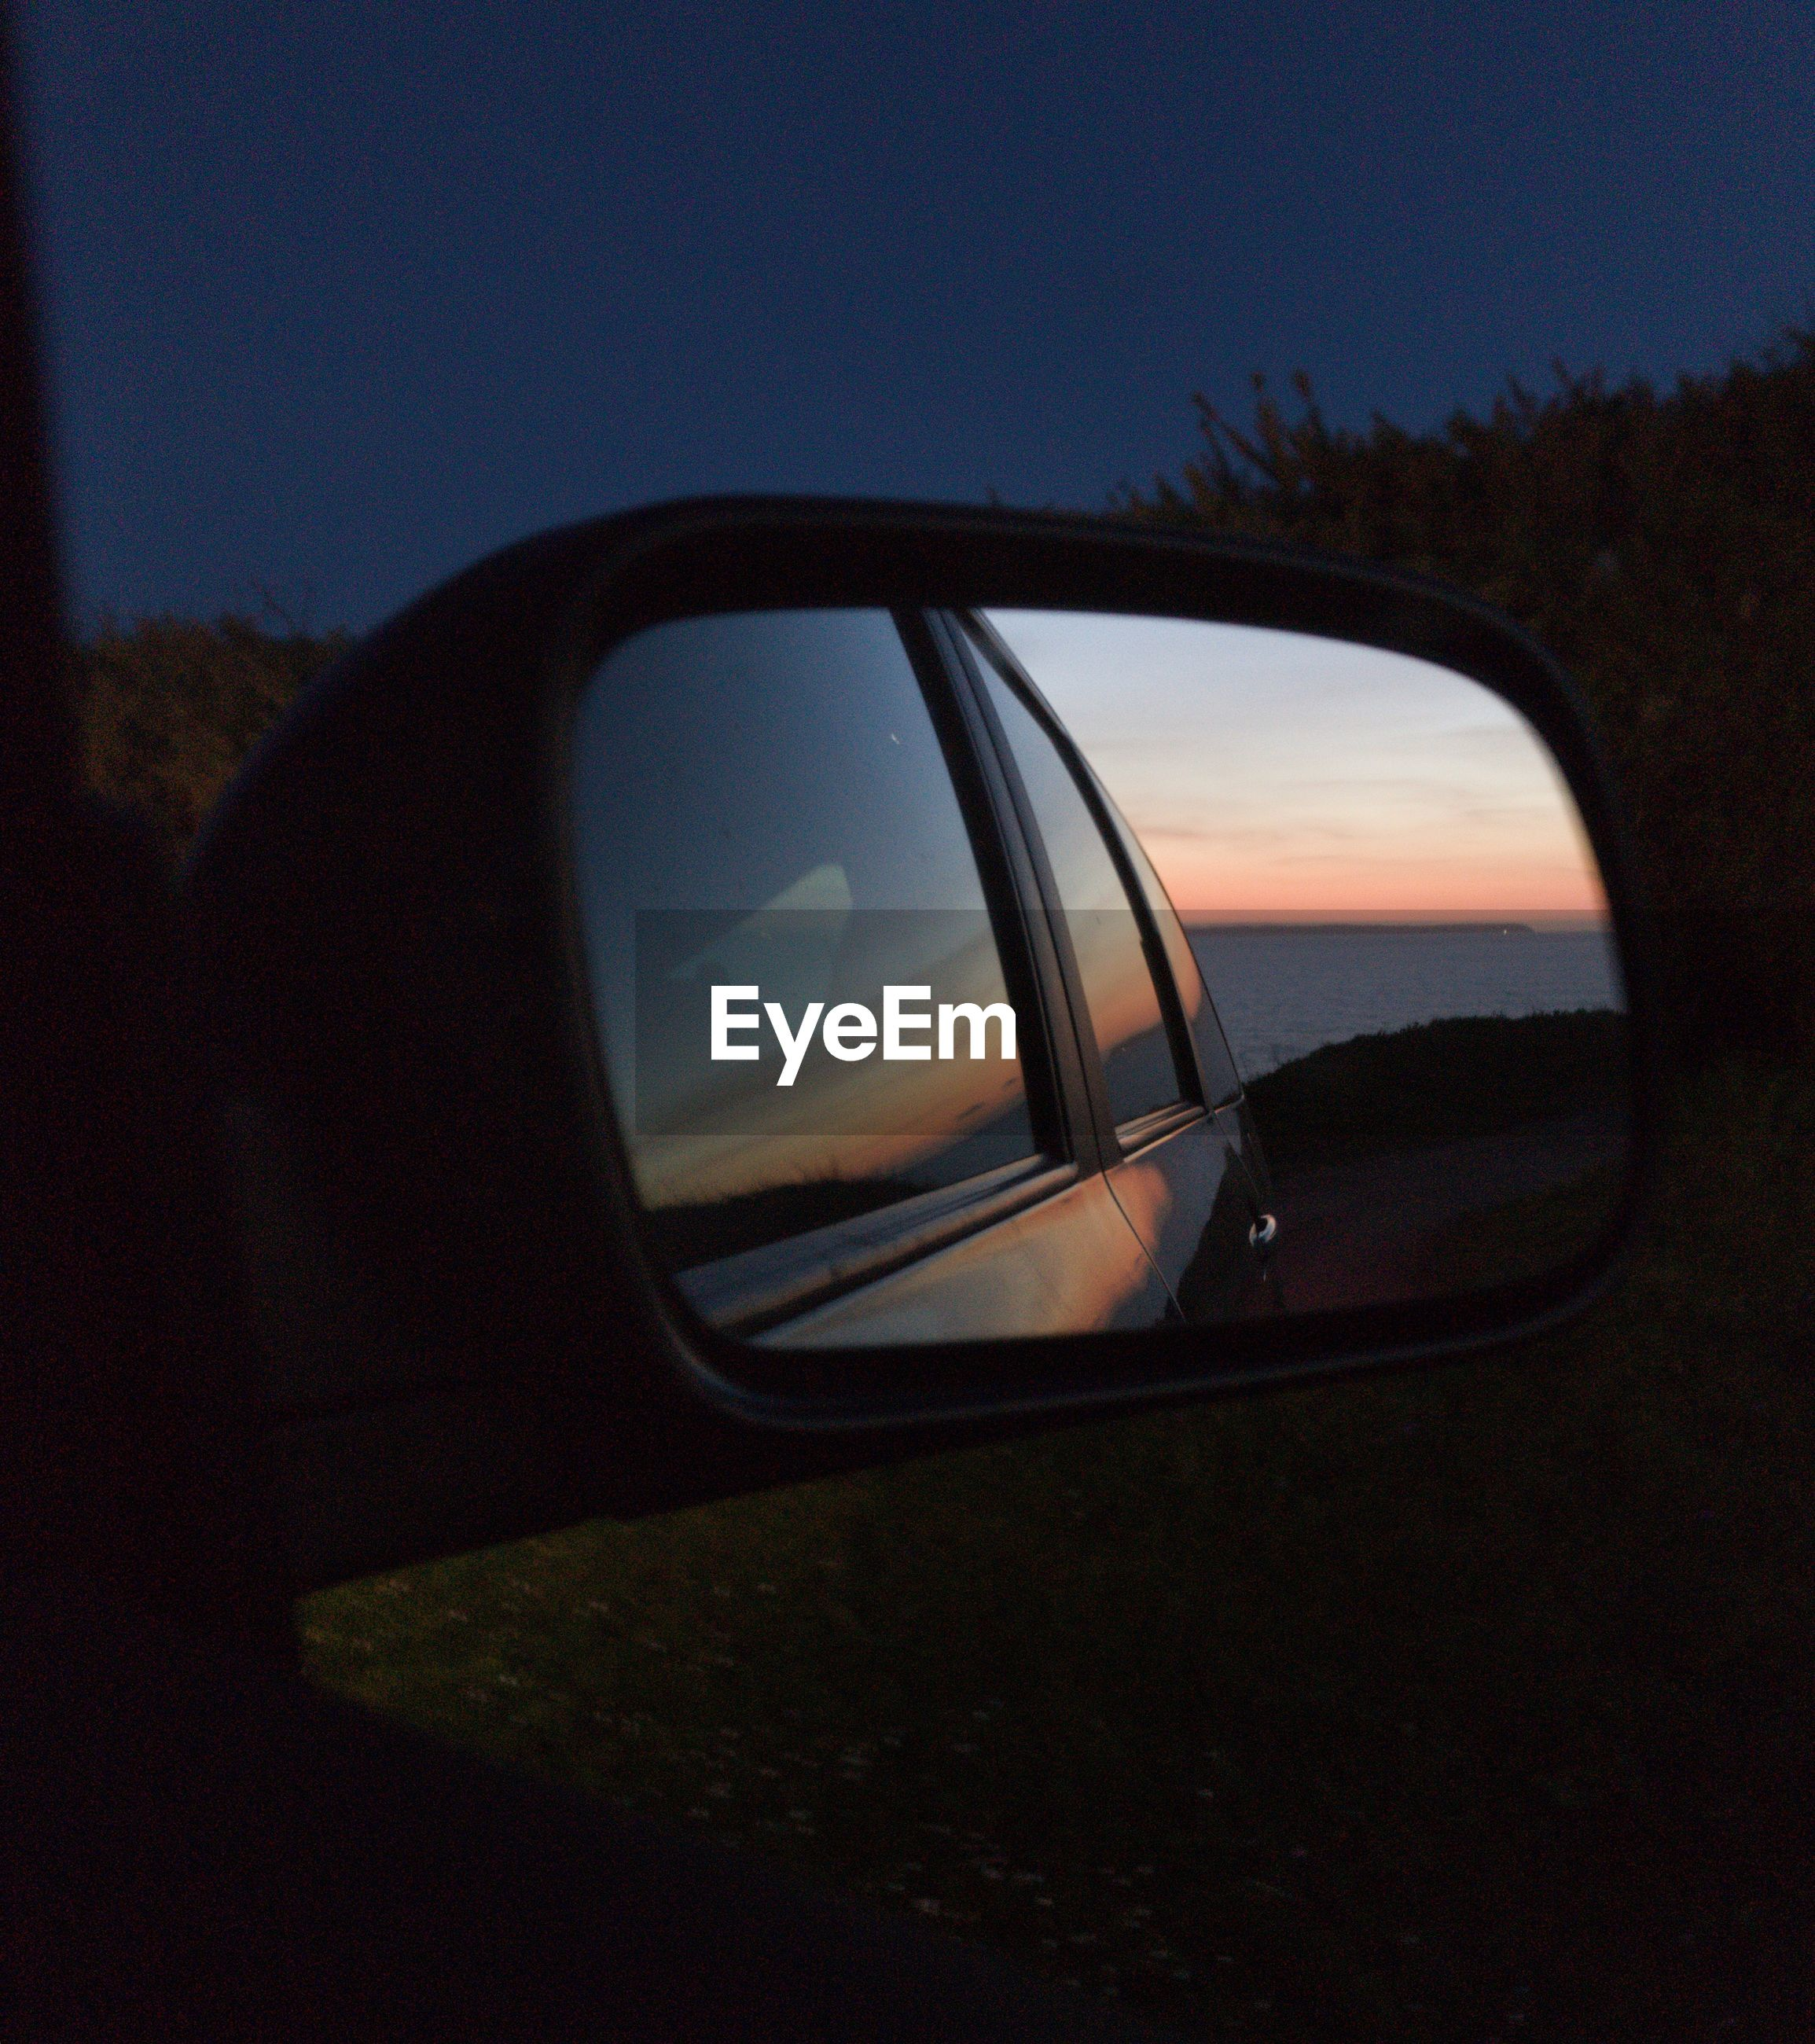 sky, sunset, reflection, land vehicle, nature, mode of transportation, motor vehicle, car, transportation, side-view mirror, no people, outdoors, close-up, orange color, beauty in nature, dusk, plant, travel, sunlight, silhouette